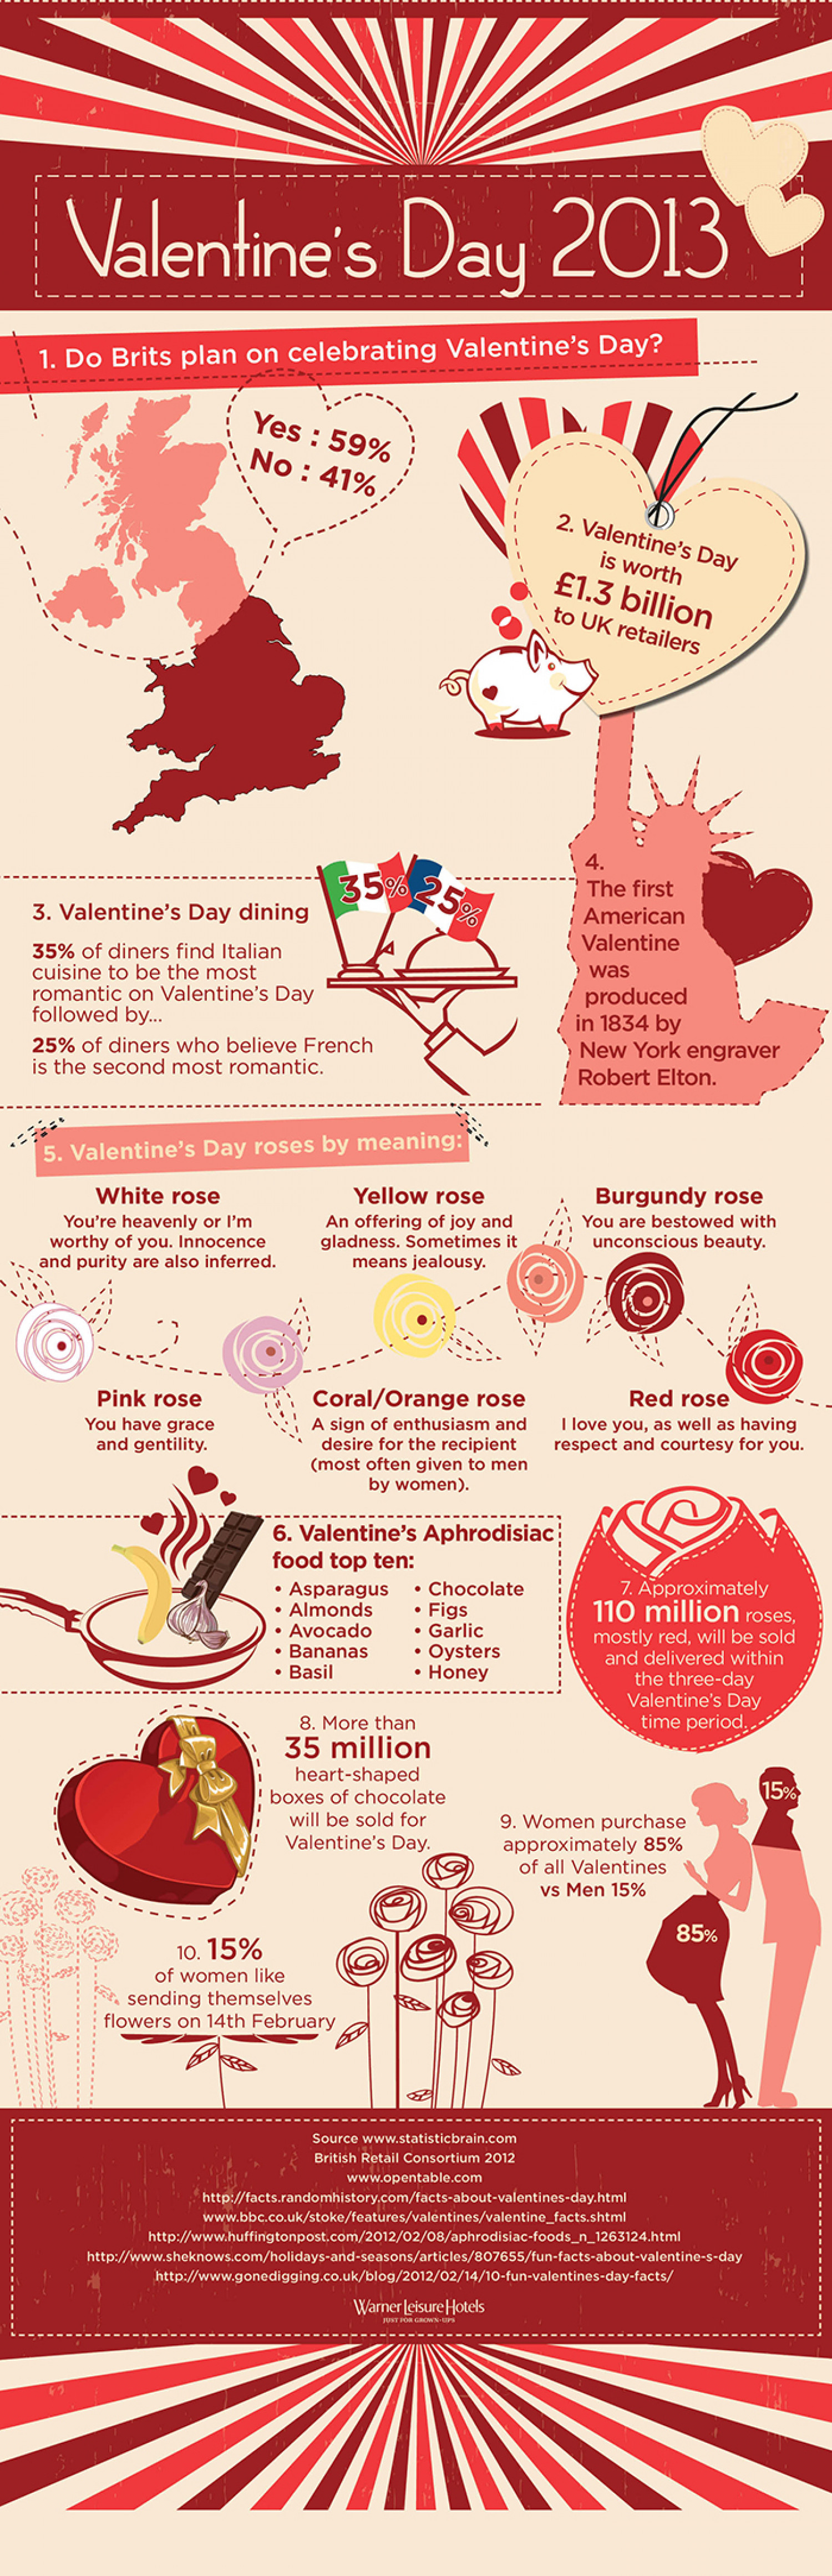 Valentine's Day 2013 Infographic